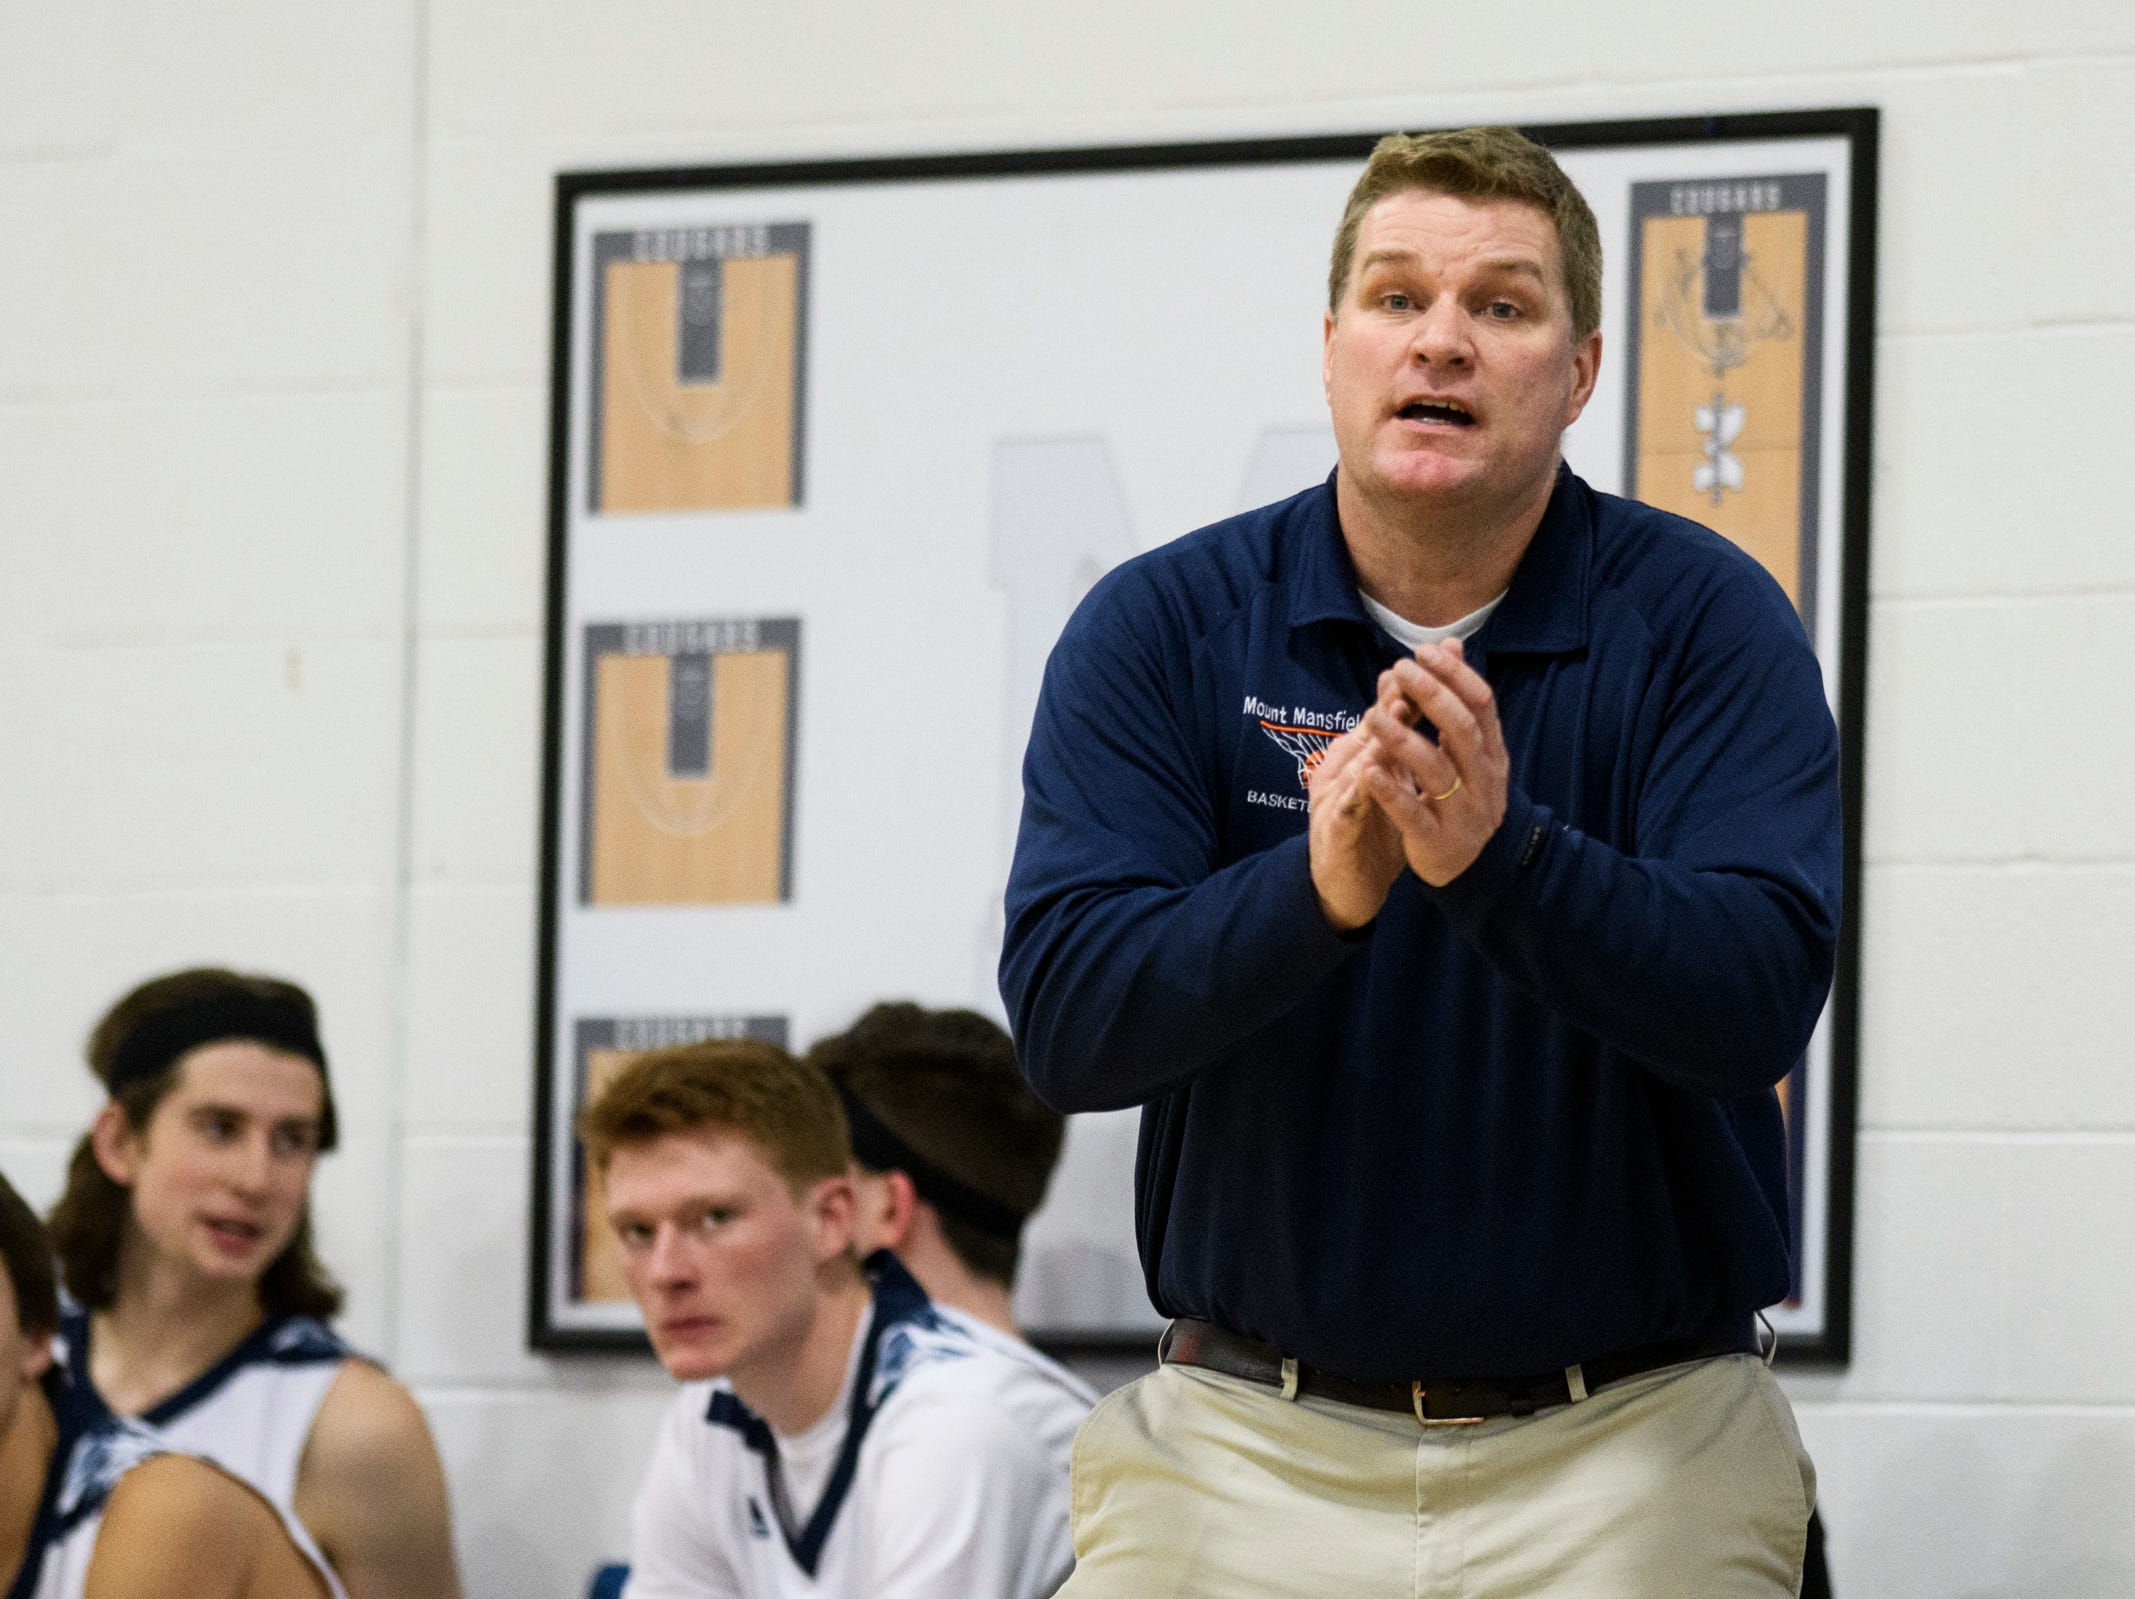 MMU head coach Jeff Davis talks to the team on the court during the boys basketball game between the Champlain Valley Union Redhawks and the Mount Mansfield Cougars at MMU High School on Tuesday night January 22, 2019 in Jericho.